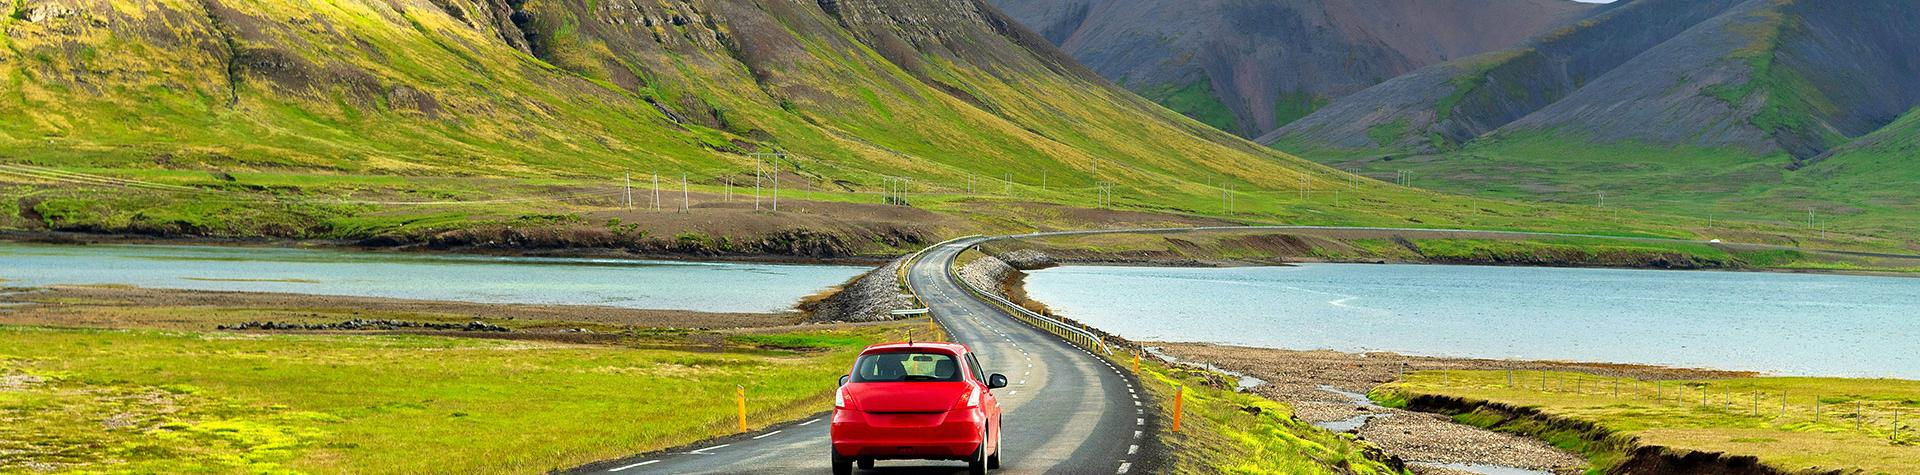 Iceland Self Drive Tours: Driving rental car in the Iceland.